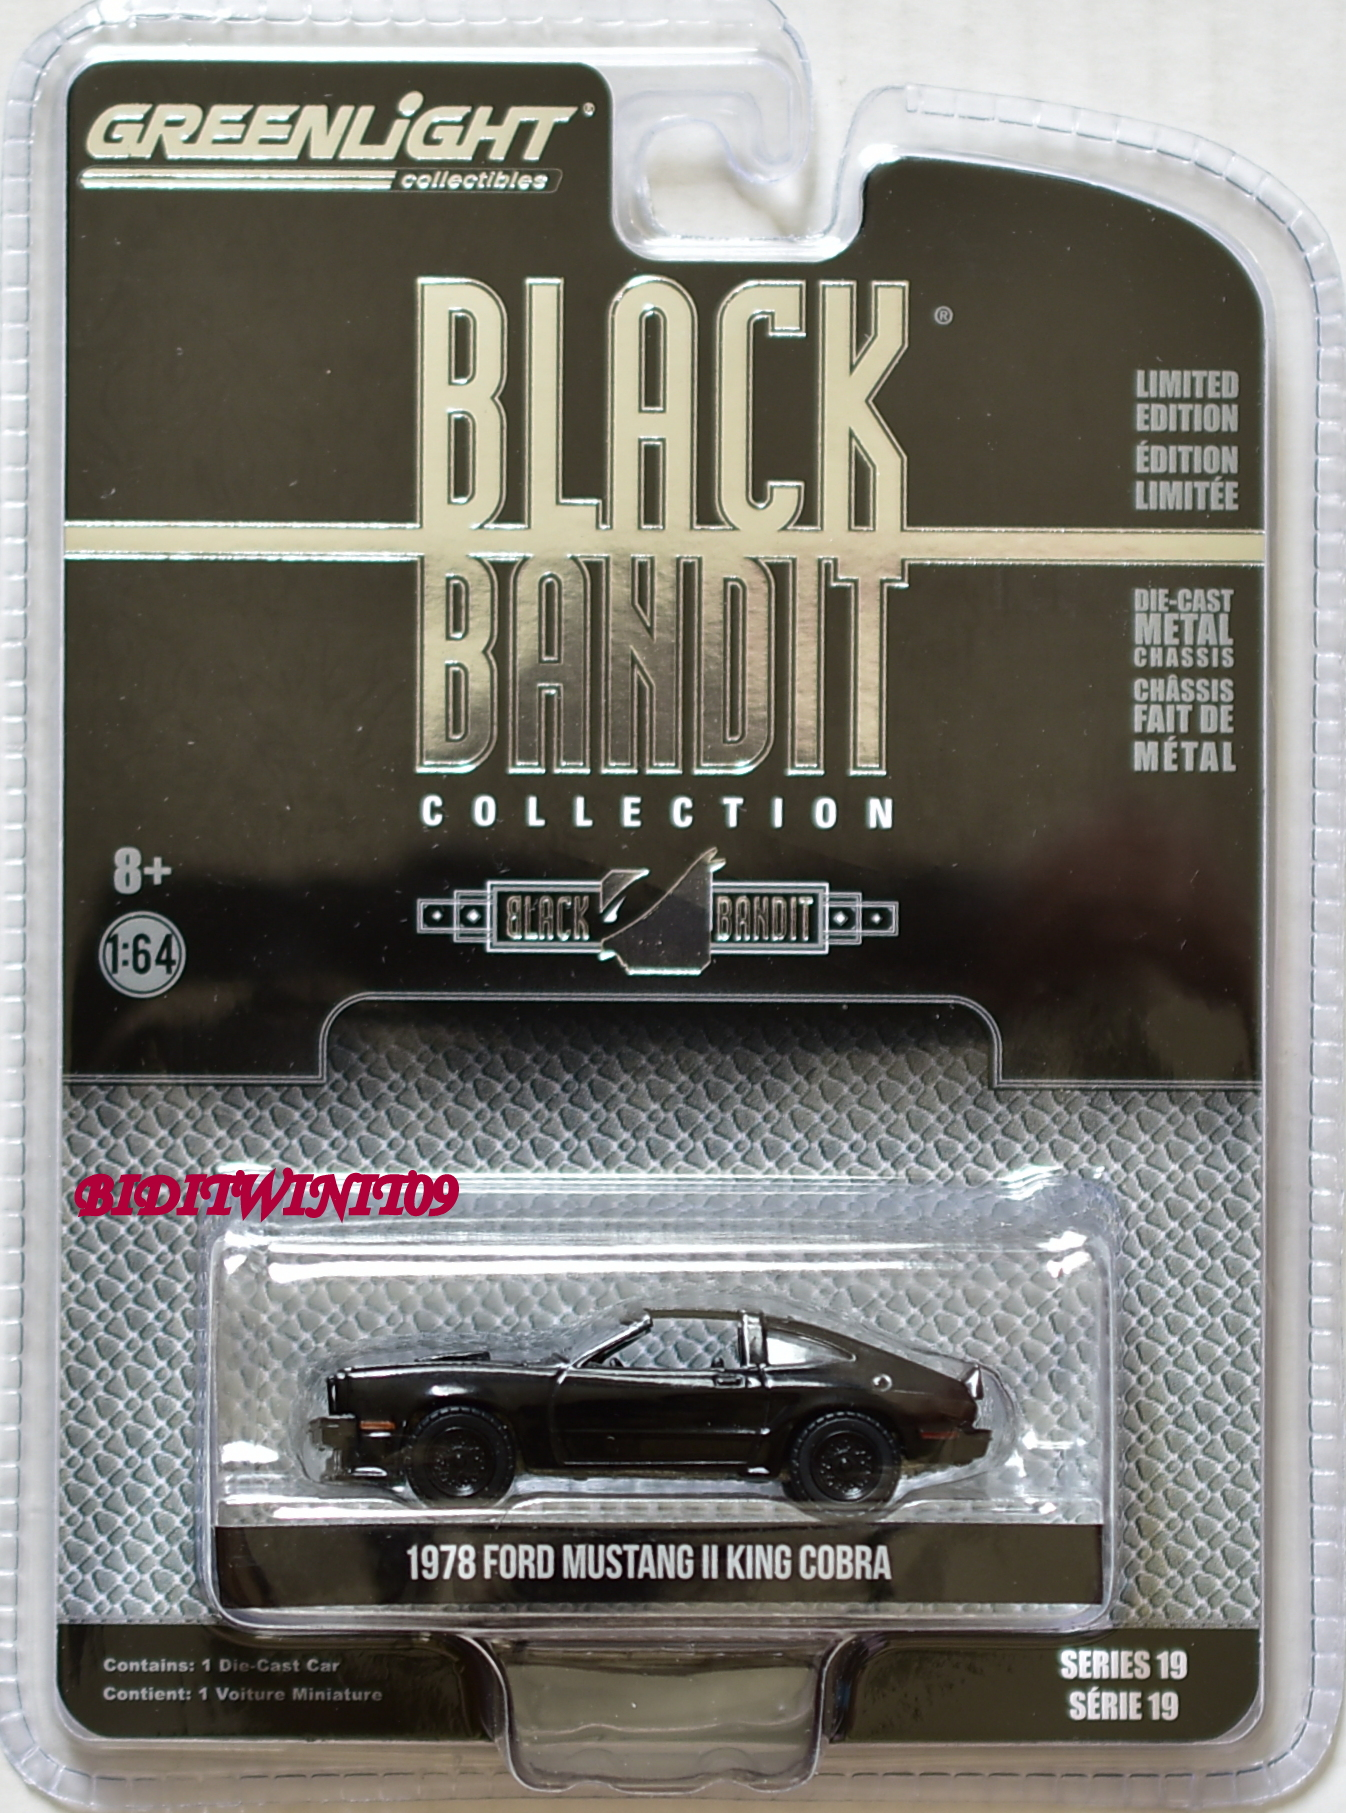 GREENLIGHT 2018 BLACK BANDIT SERIES 19 1978 FORD MUSTANG II KING COBRA